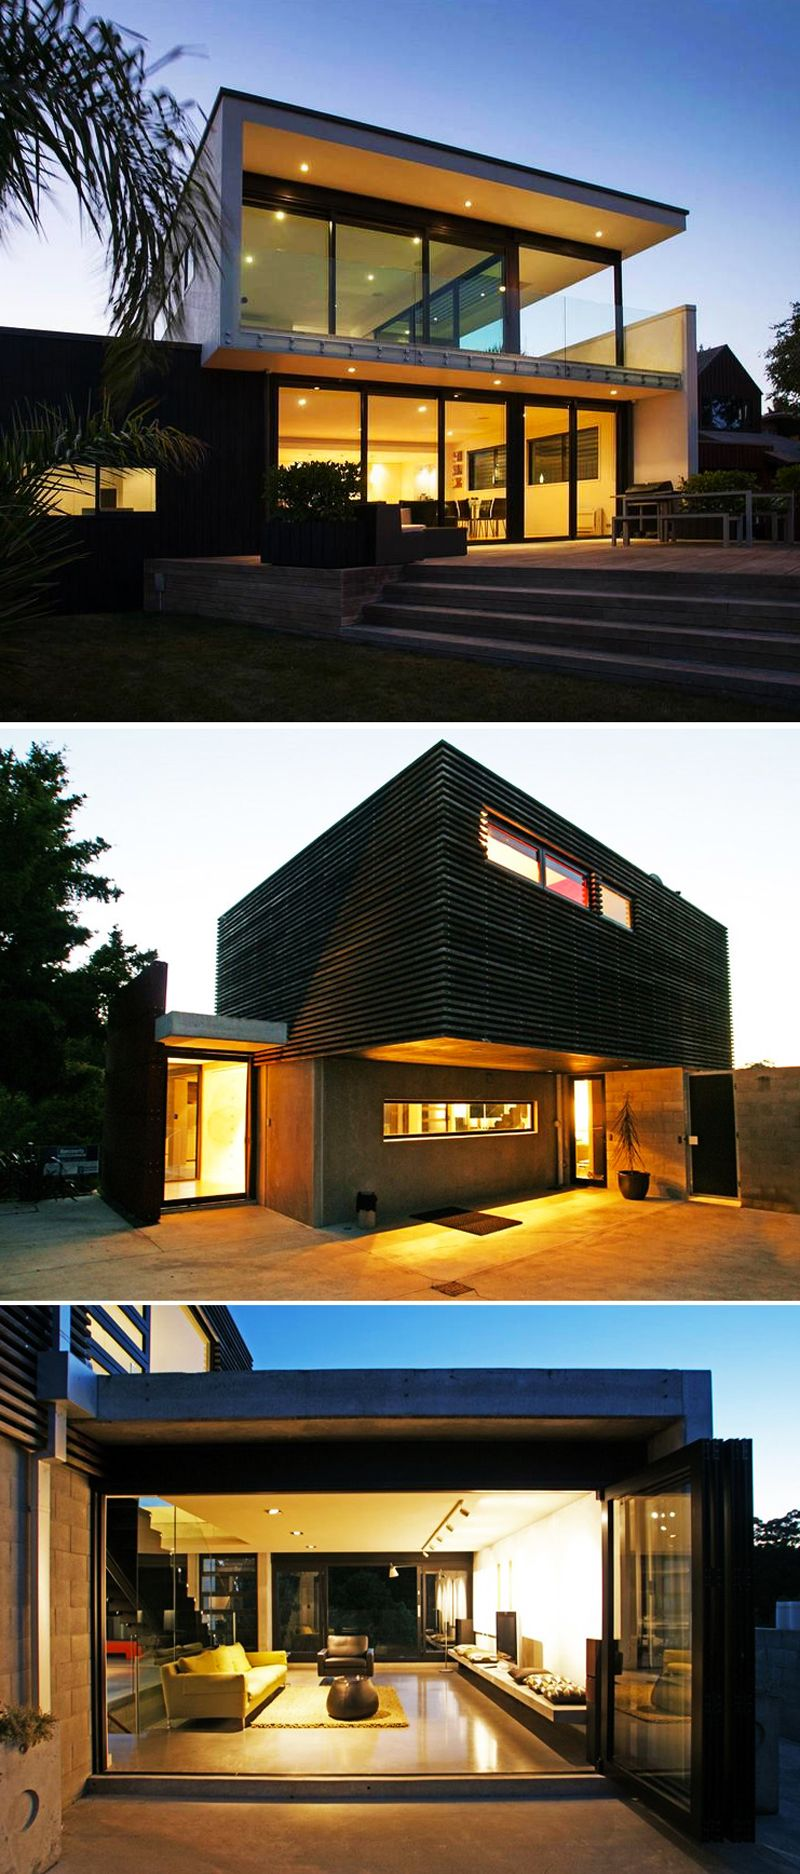 31 Modern Home Decor Ideas For 2016: Modern House Architecture